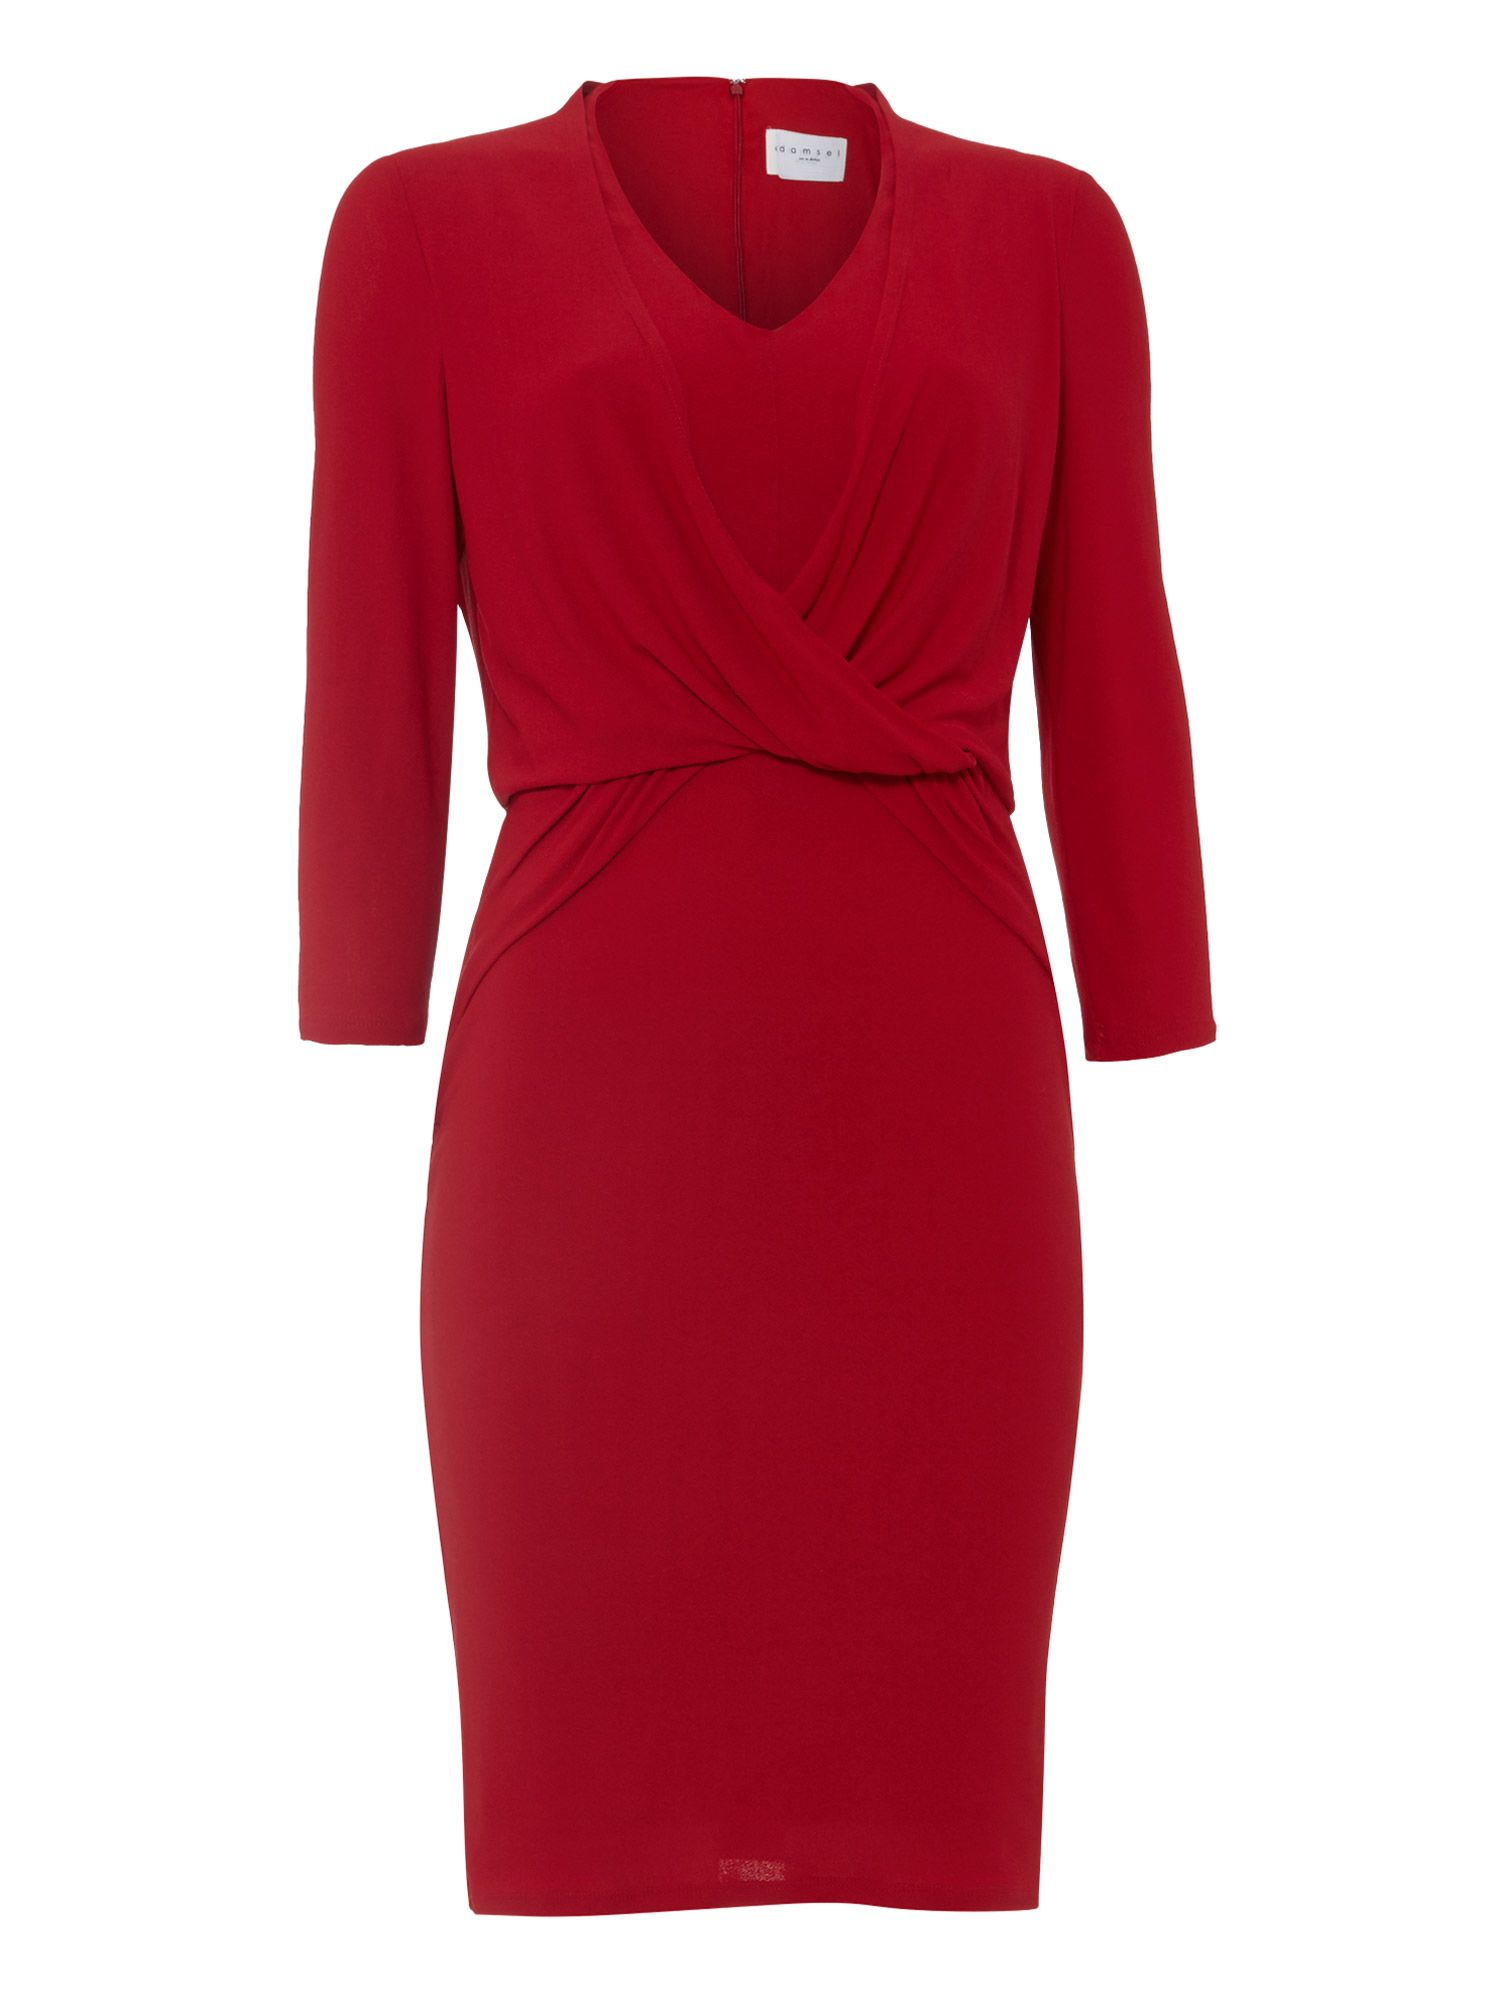 Damsel in a Dress Cherry Twist Knot Jersey Dress, Red